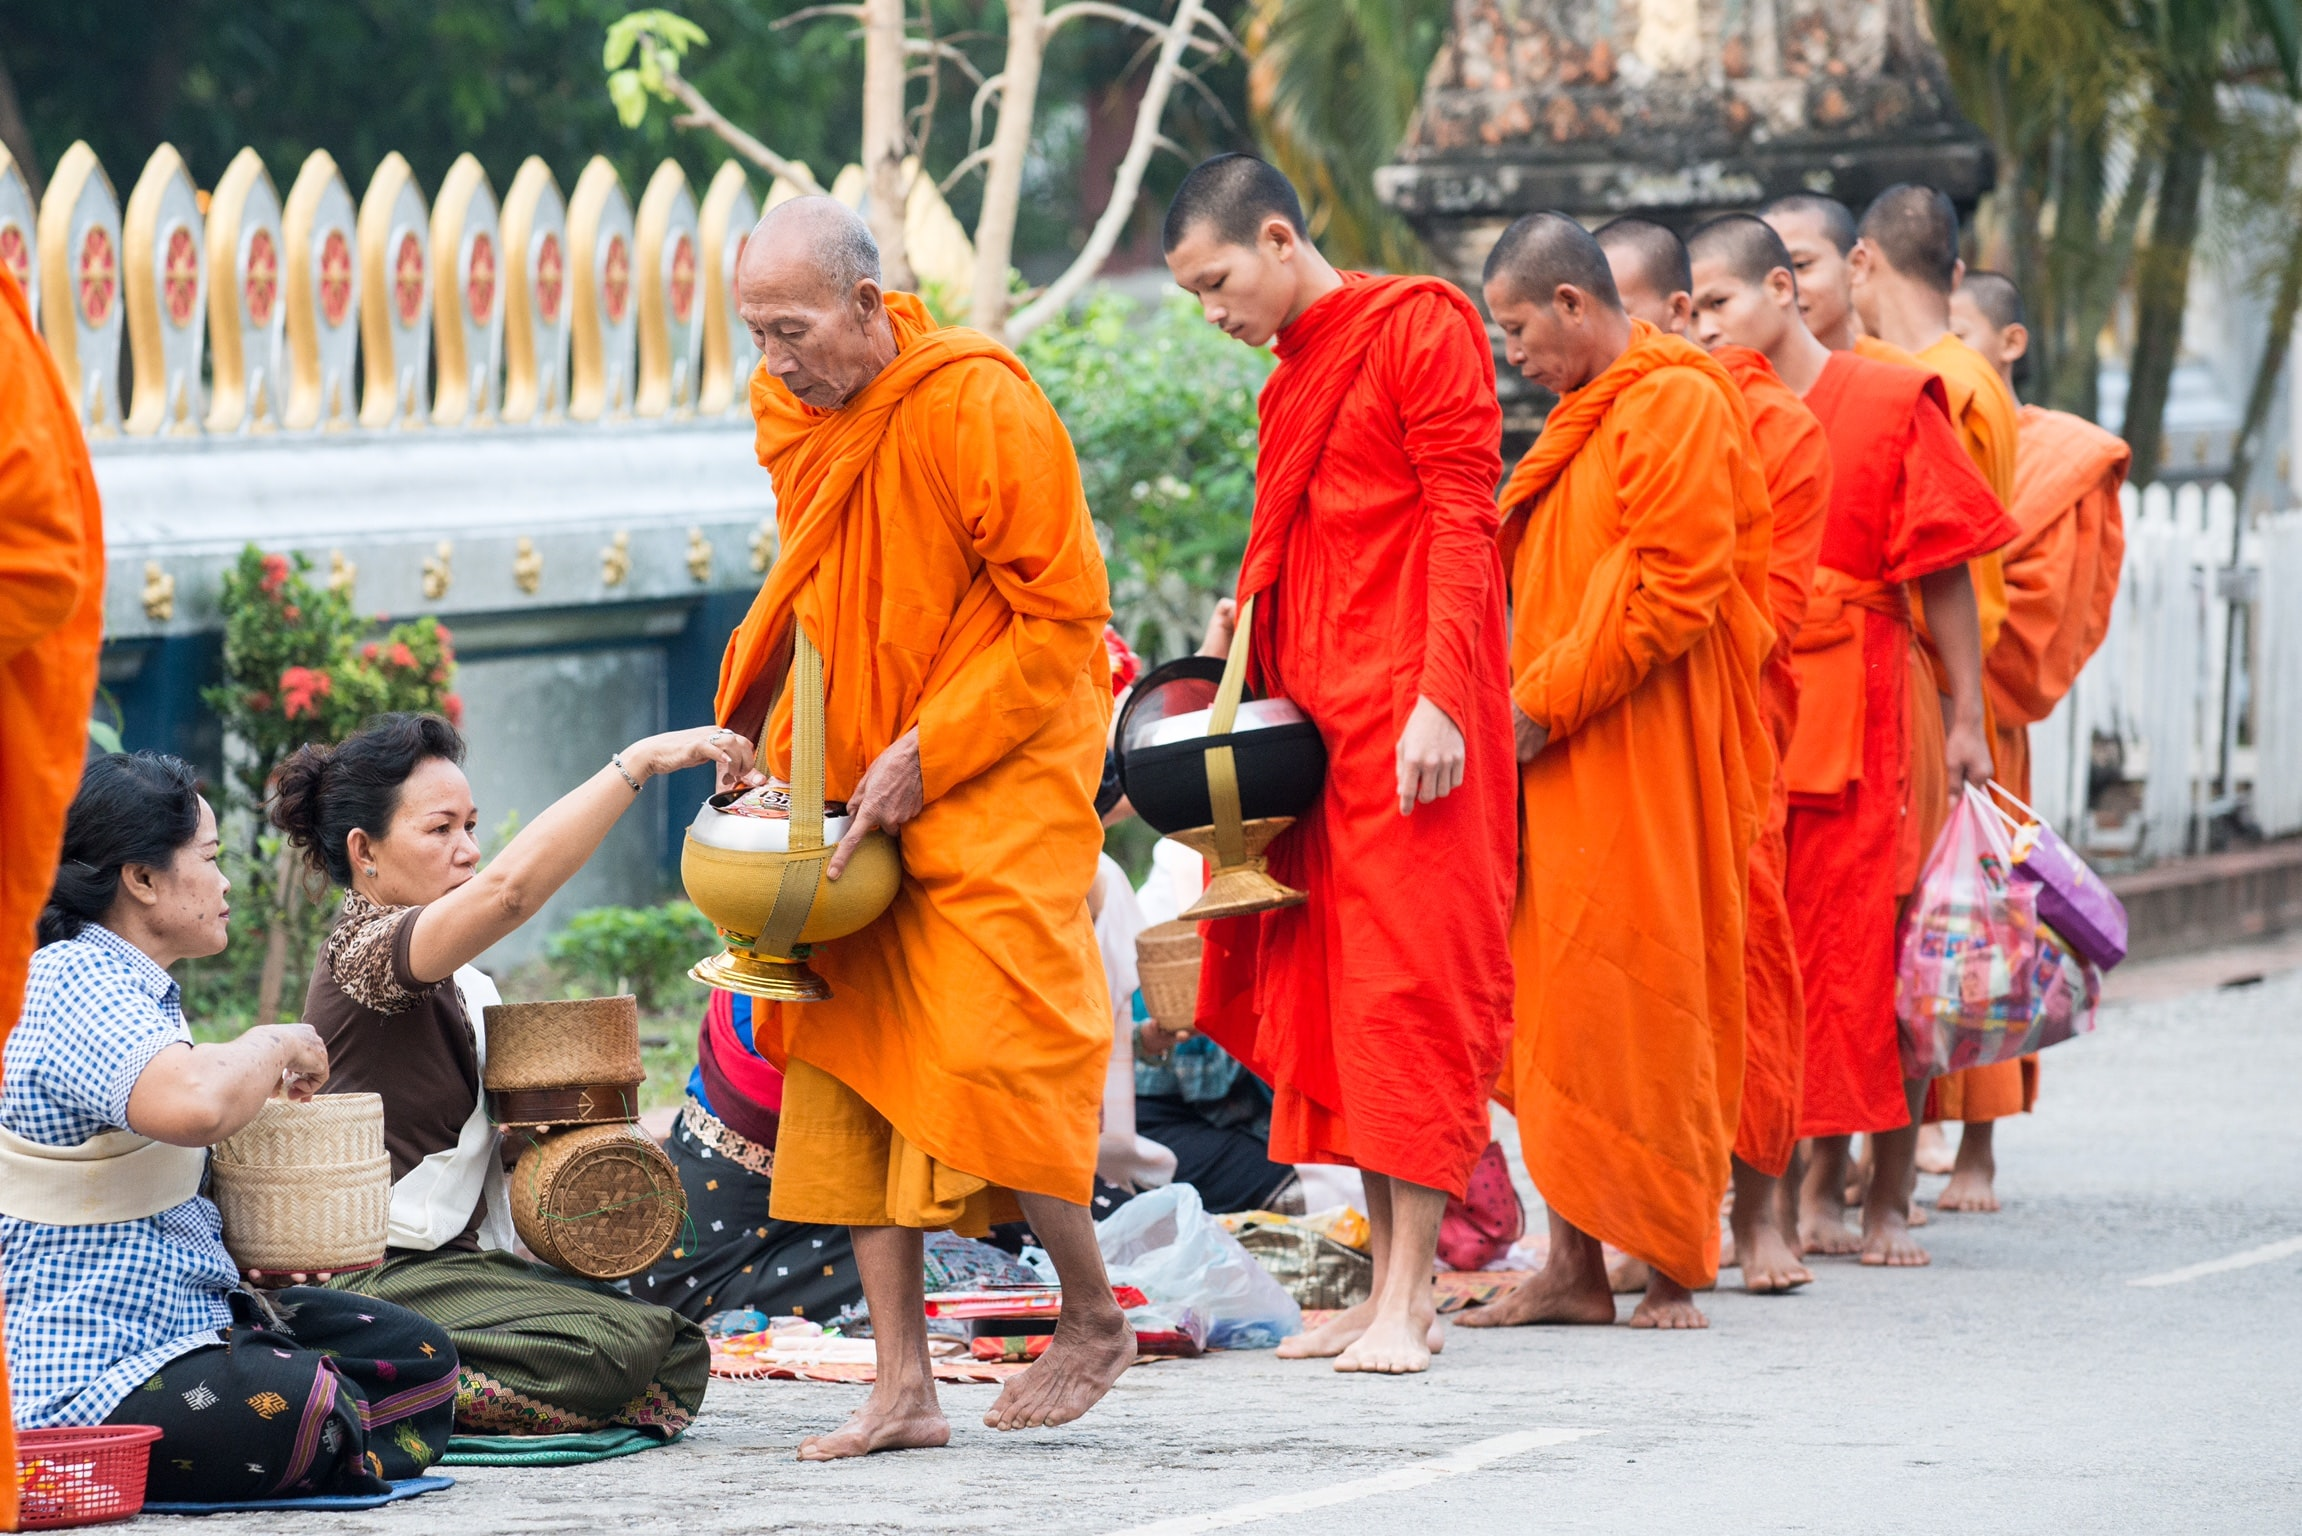 monks walking near people holding baskets on street